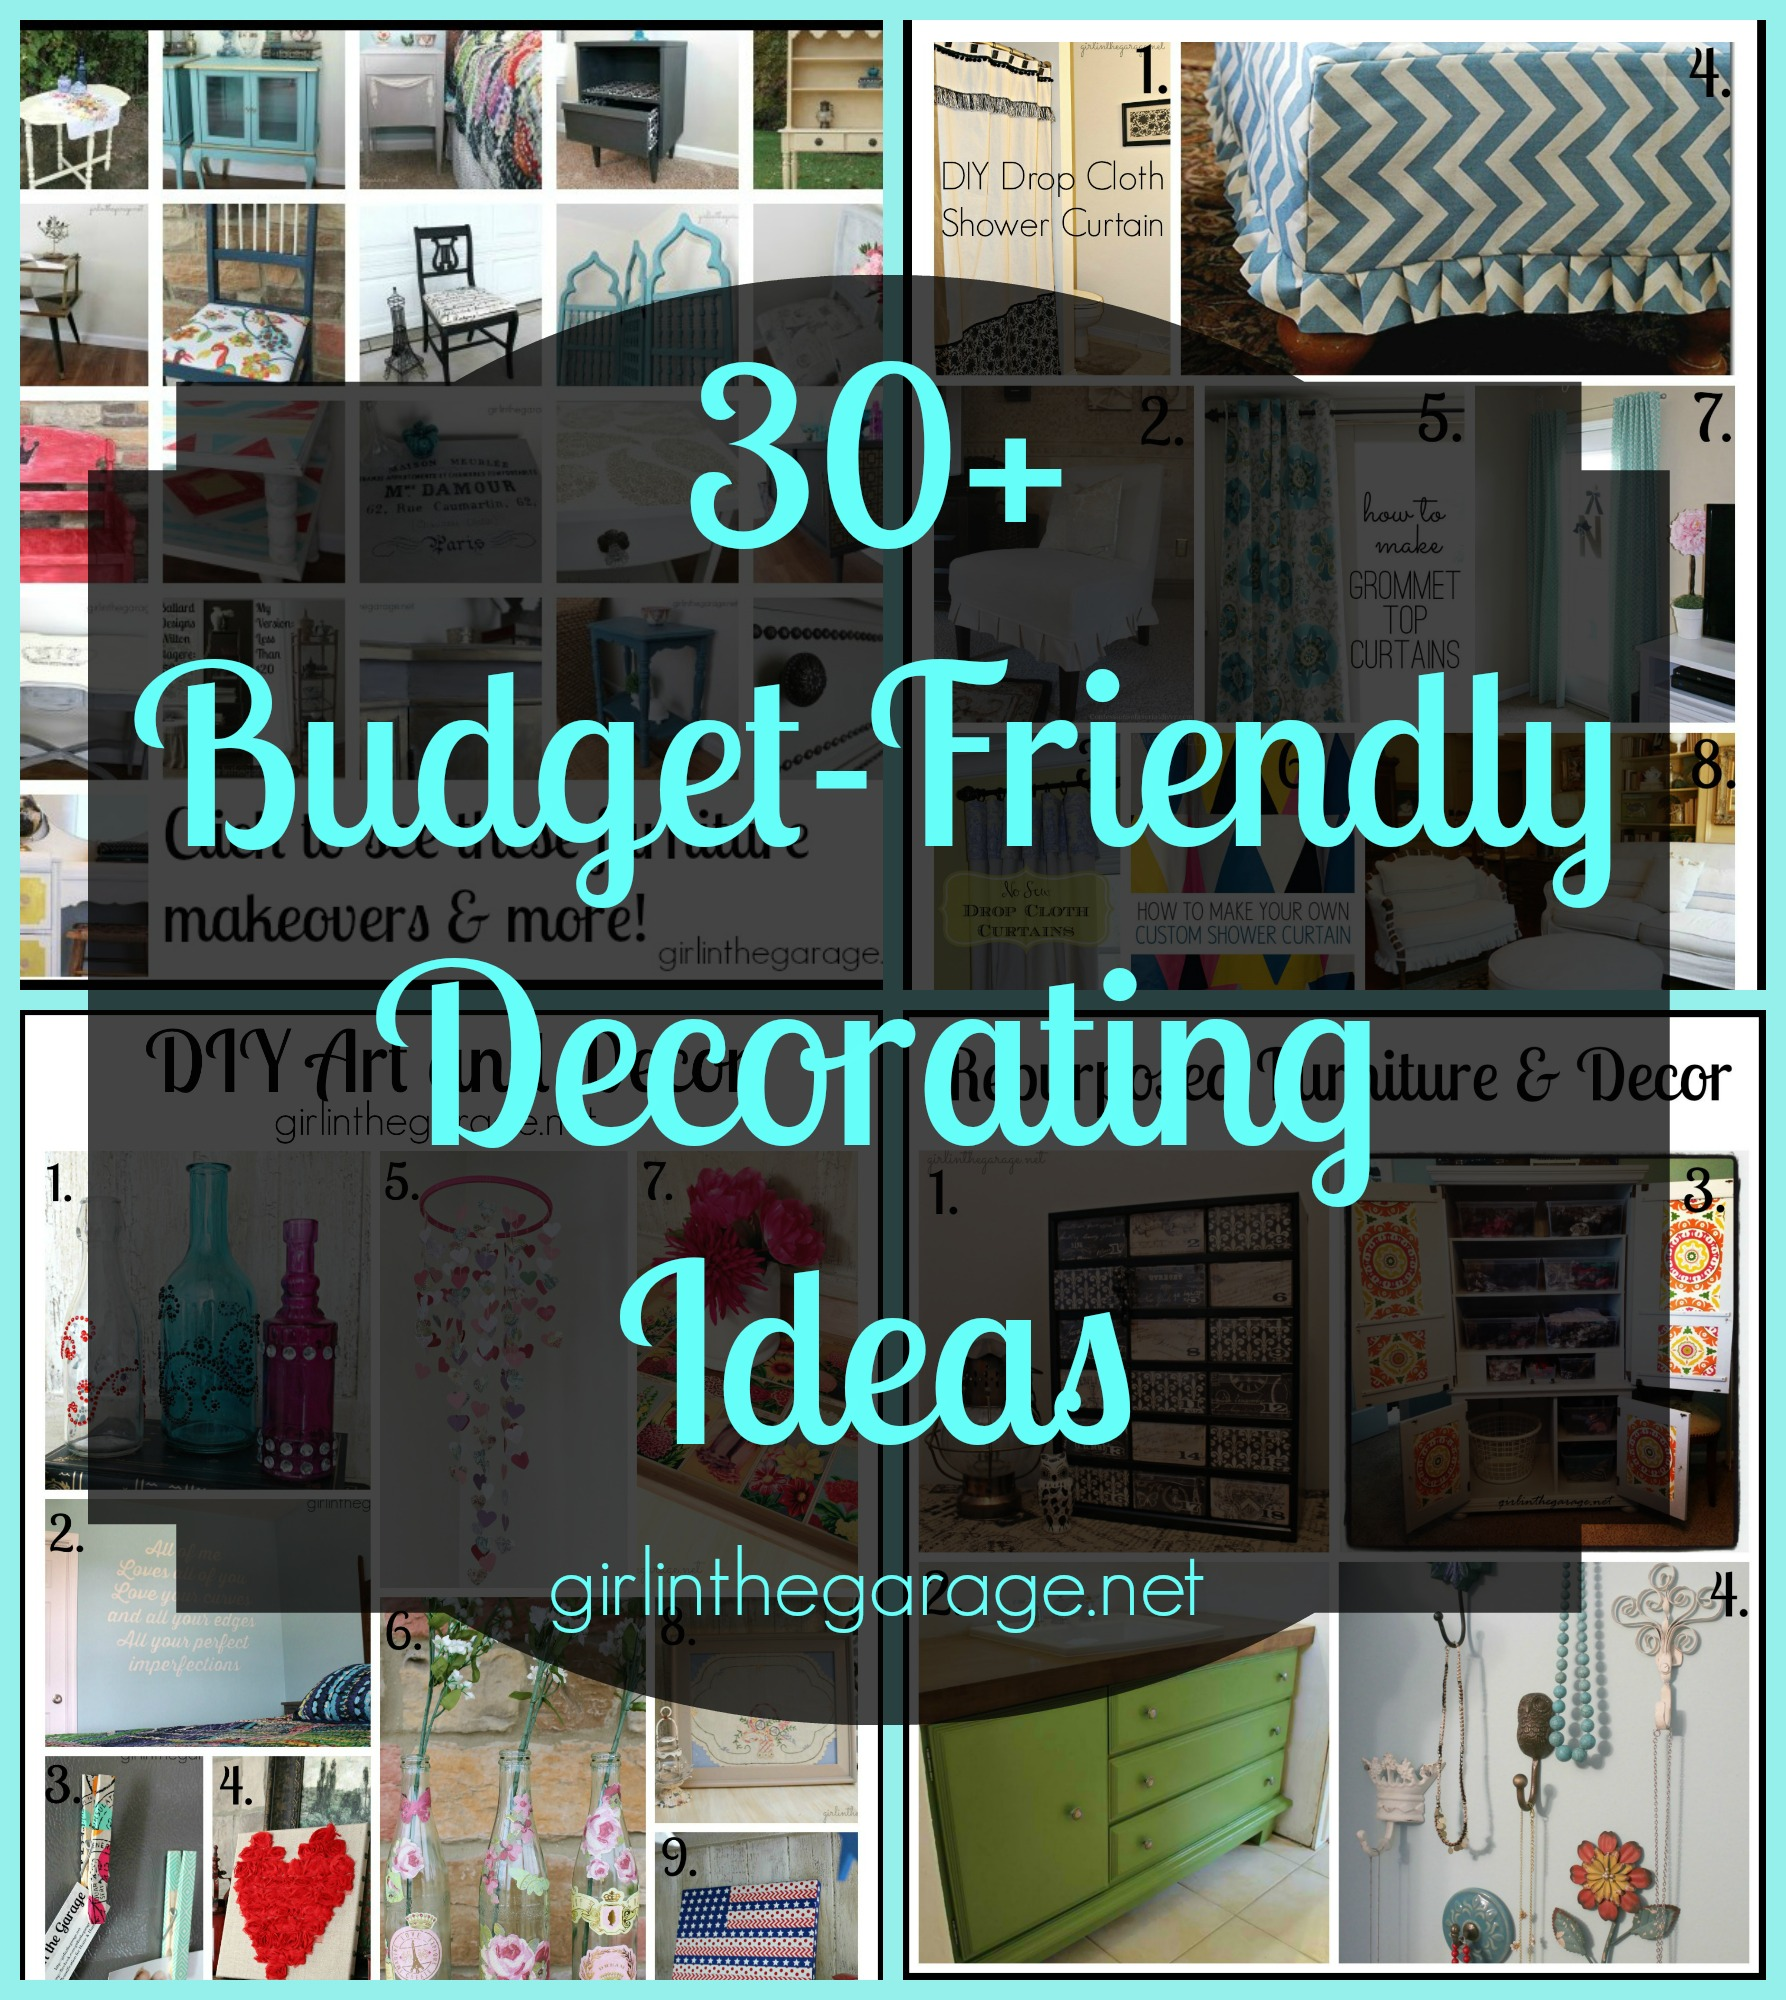 Home Design Ideas Budget: 30+ Budget-Friendly DIY Decorating Ideas